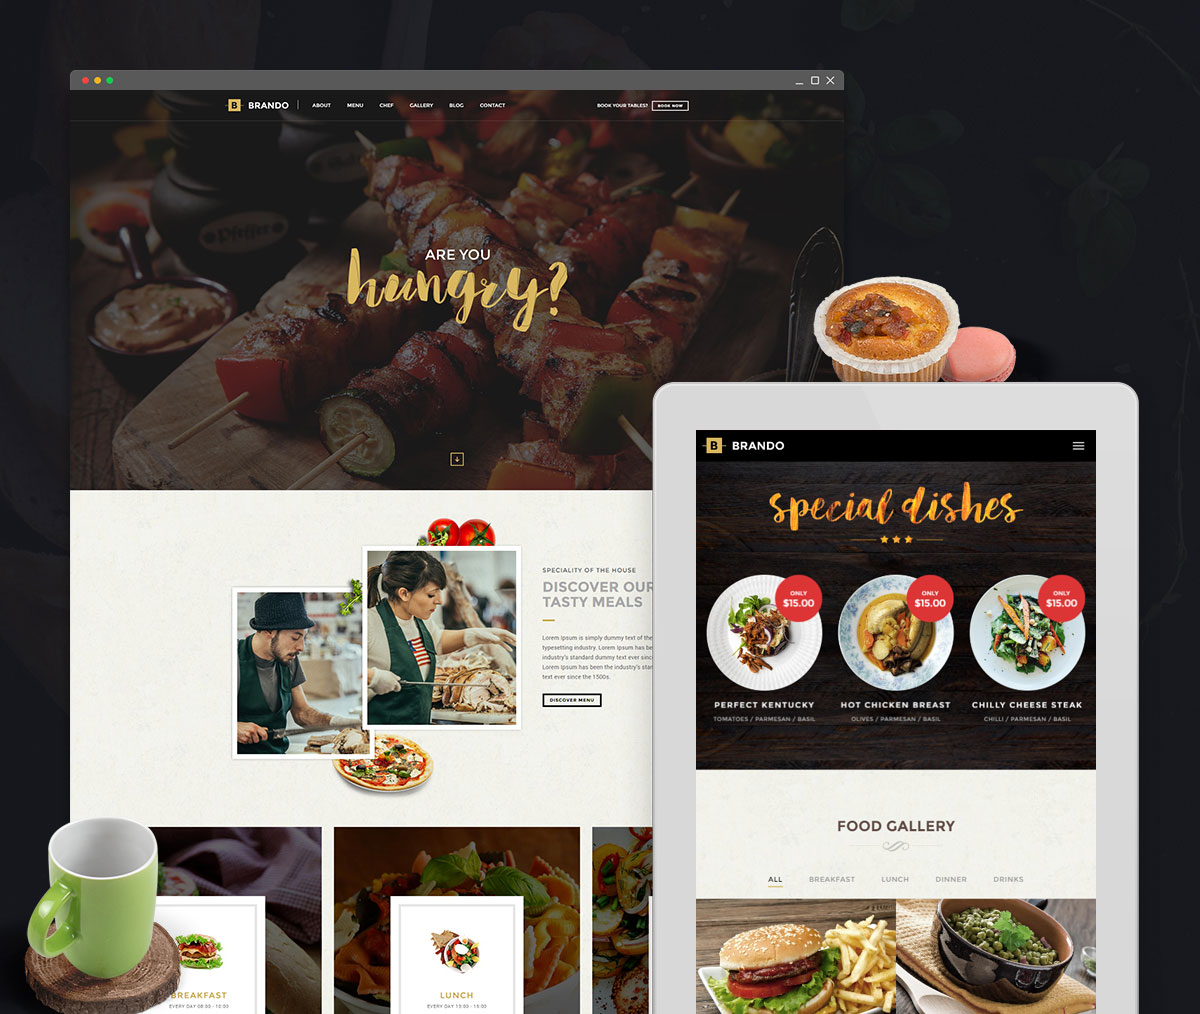 "brando-wordpress-restaurant-themes"" width=""1200"" height=""1014"" data-lazy-srcset=""https://webypress.fr/wp-content/uploads/2019/01/1548384896_322_45-meilleurs-thèmes-de-restaurants-WordPress-2019.jpg 1200w, https://cdn.colorlib.com/wp/wp-content/uploads/sites/2/brando-wordpress-restaurant-themes-300x254.jpg 300w, https://cdn.colorlib.com/wp/wp-content/uploads/sites/2/brando-wordpress-restaurant-themes-768x649.jpg 768w, https://cdn.colorlib.com/wp/wp-content/uploads/sites/2/brando-wordpress-restaurant-themes-1024x865.jpg 1024w"" data-lazy-sizes=""(max-width: 1200px) 100vw, 1200px"" data-lazy-src=""https://webypress.fr/wp-content/uploads/2019/01/1548384896_322_45-meilleurs-thèmes-de-restaurants-WordPress-2019.jpg?is-pending-load=1"" srcset=""data:image/gif;base64,R0lGODlhAQABAIAAAAAAAP///yH5BAEAAAAALAAAAAABAAEAAAIBRAA7""/></p> <p><noscript><img class="